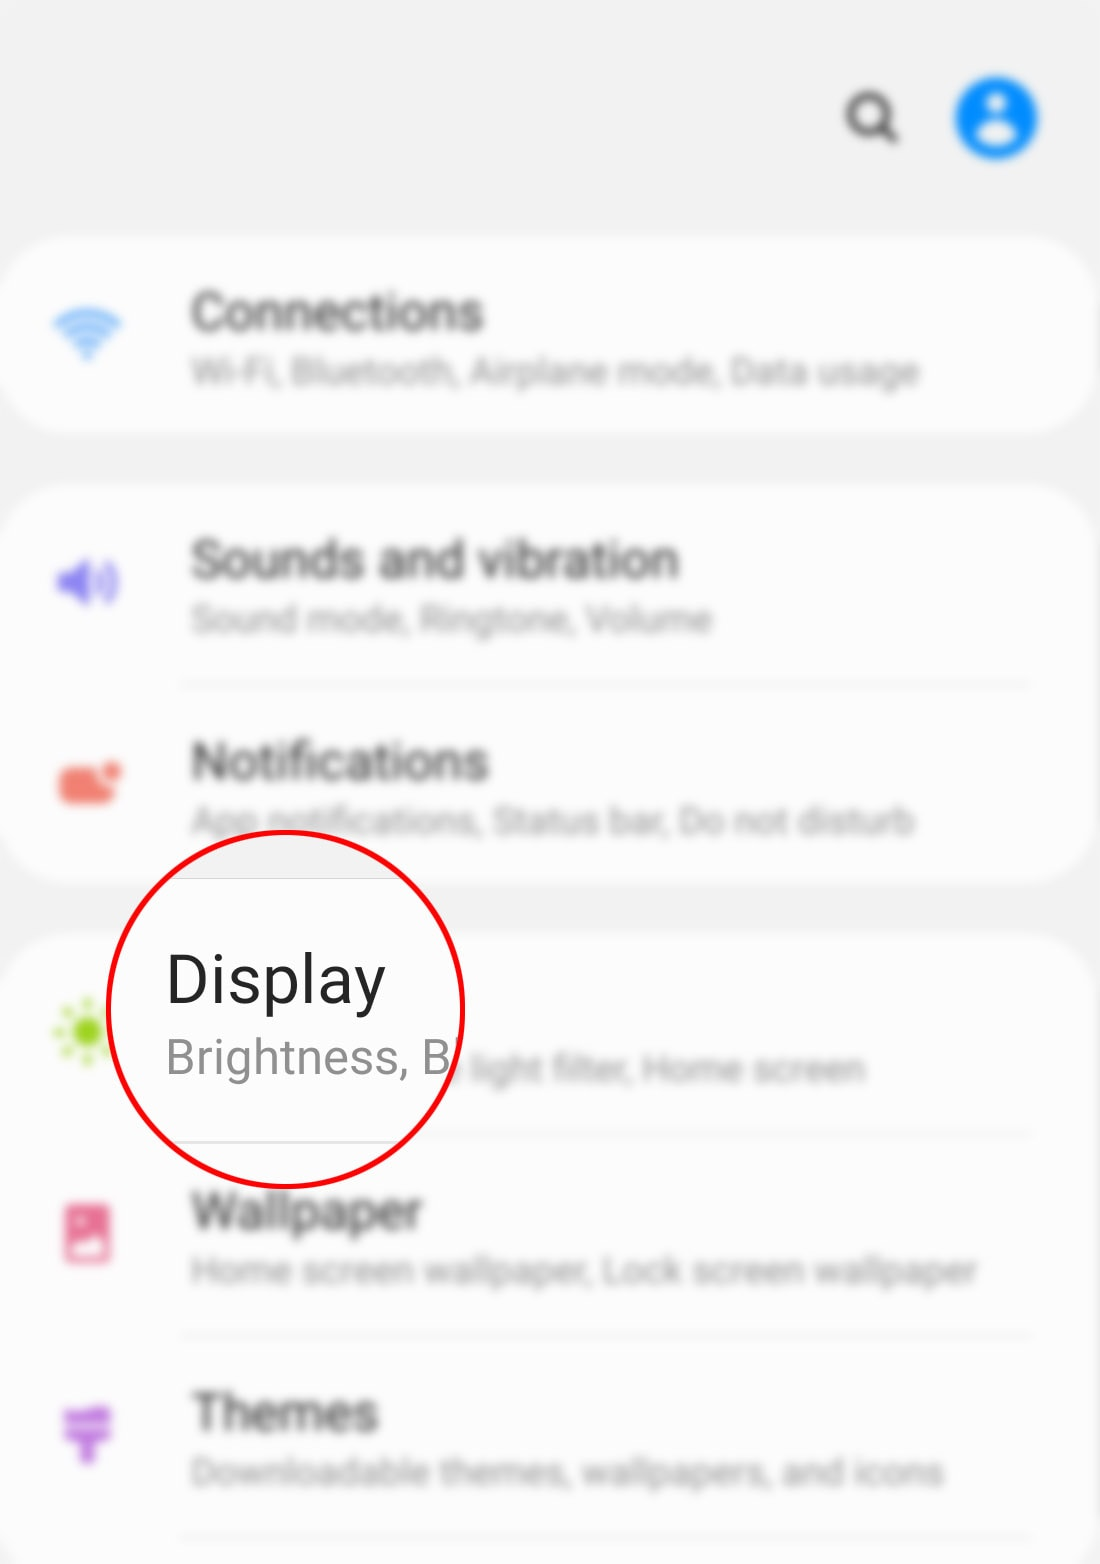 download new fonts on galaxy s20 - display settings